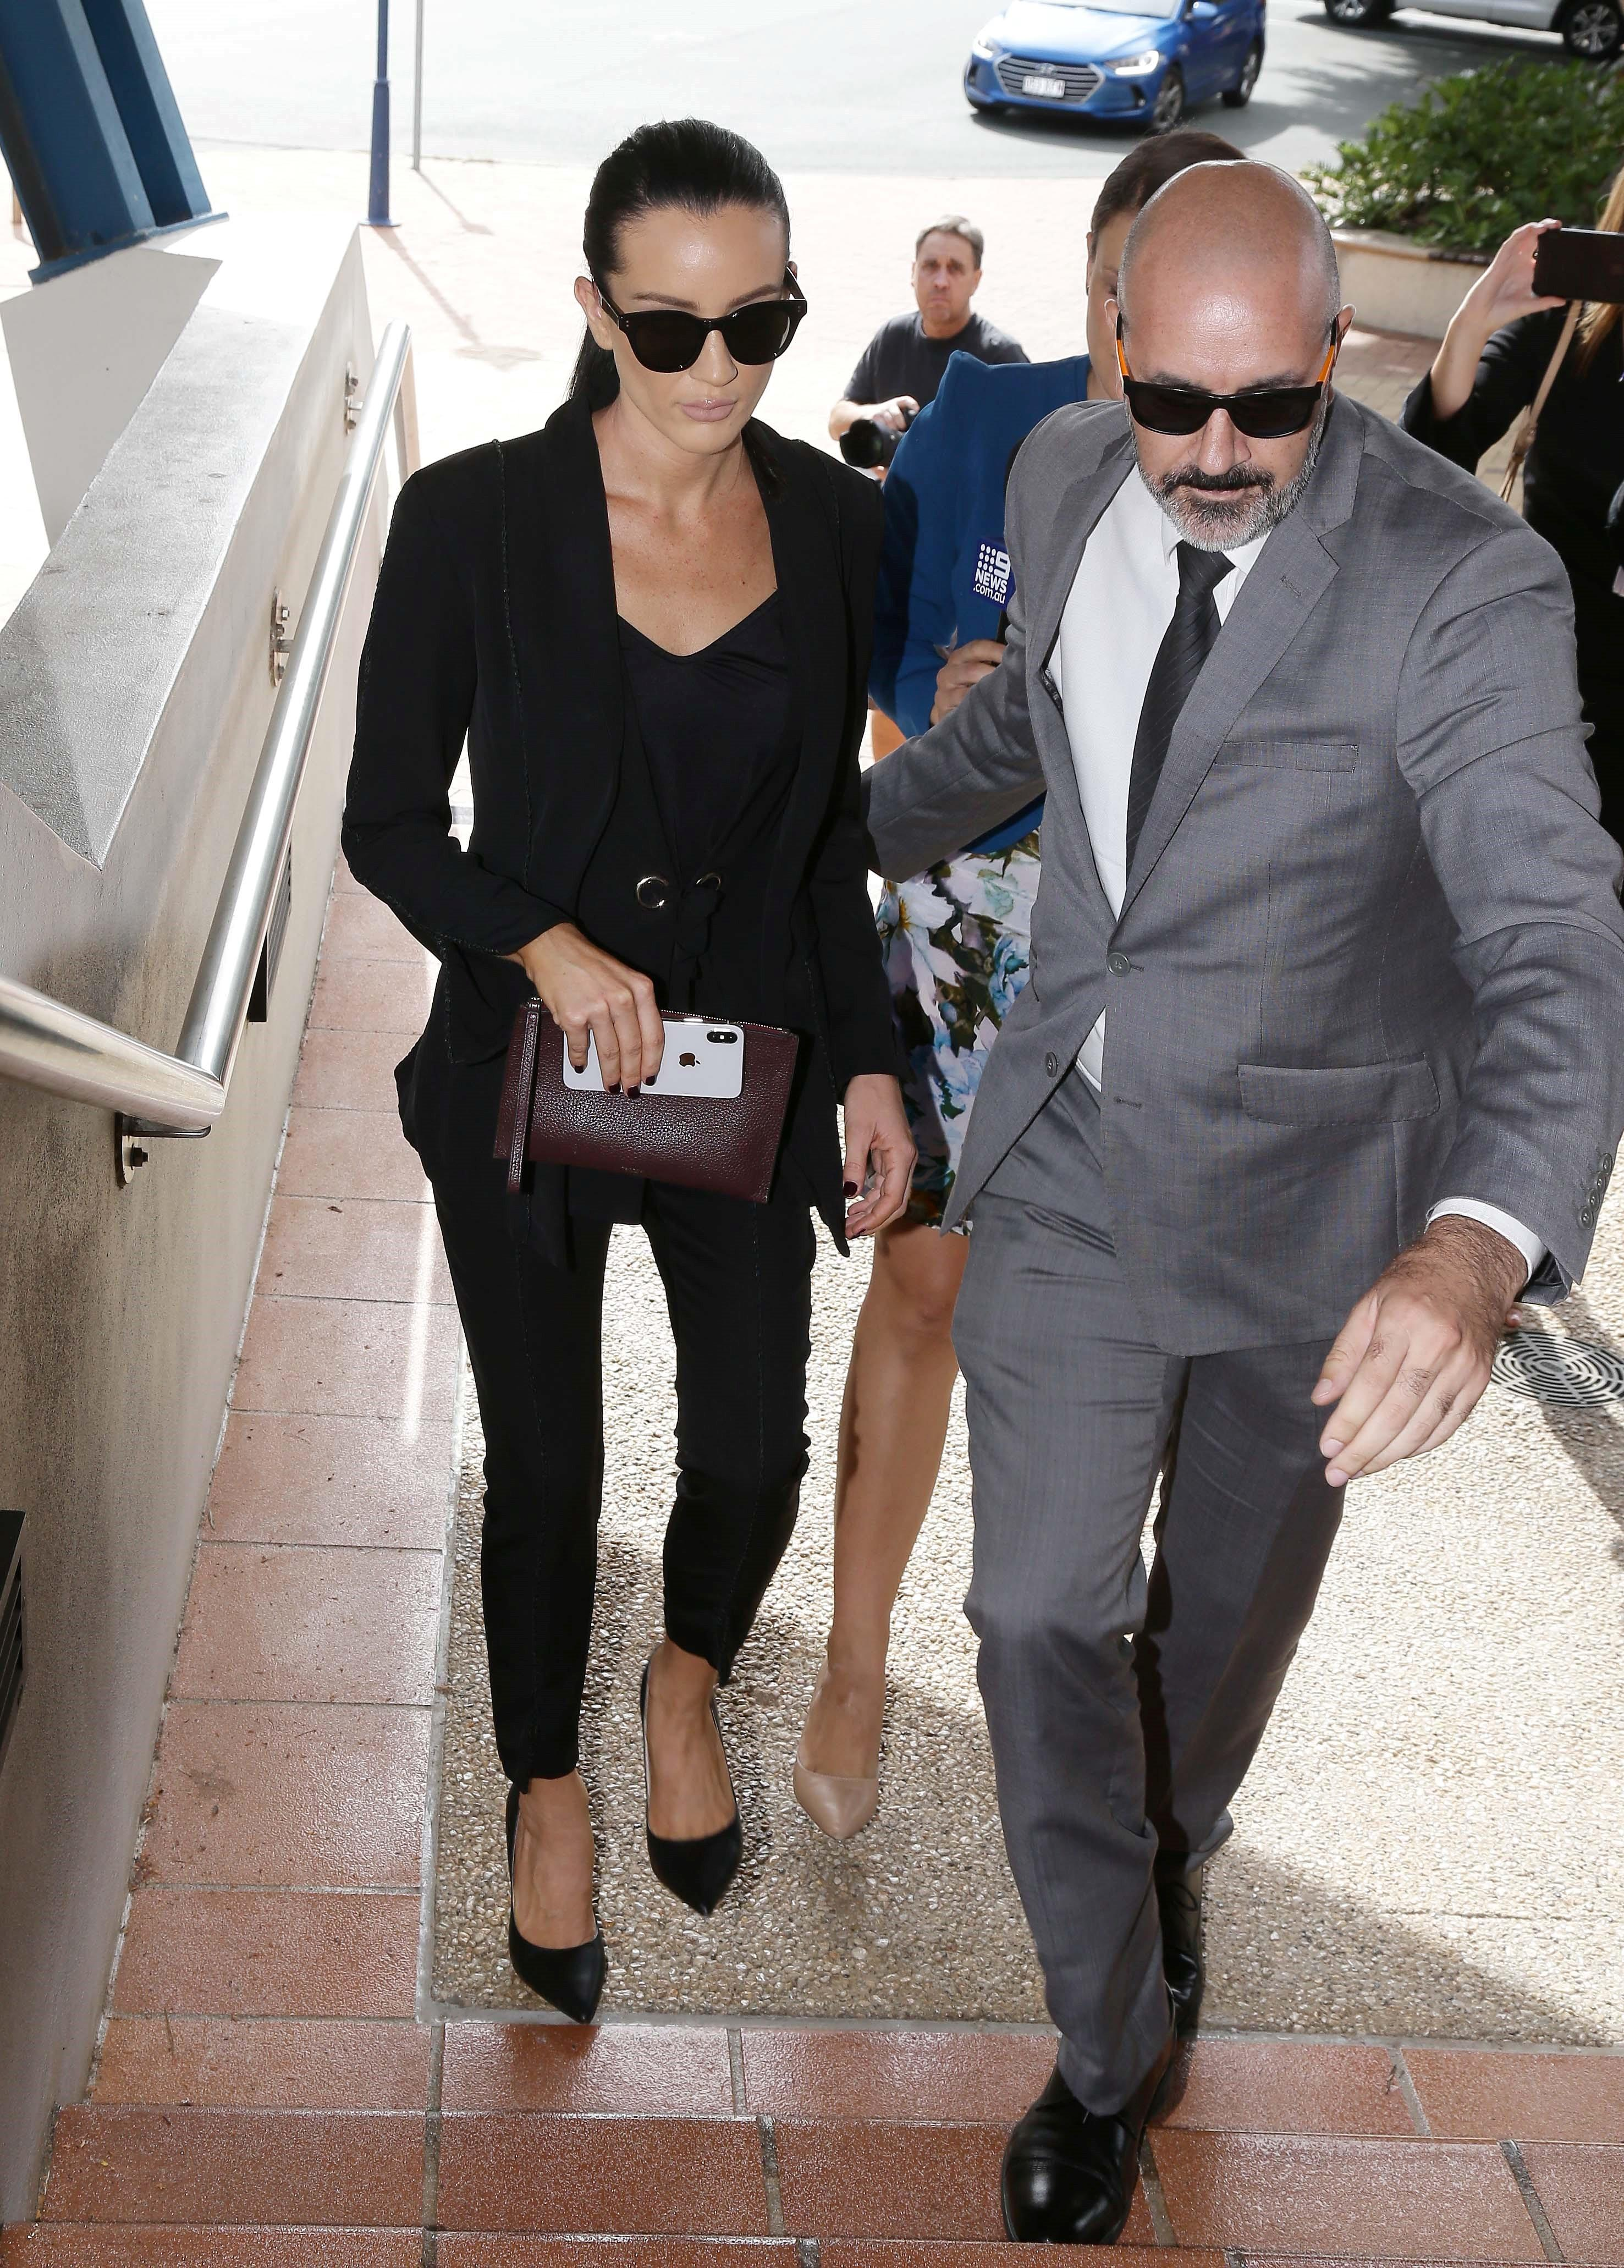 MAFS star Ines arrives at court with bodyguard